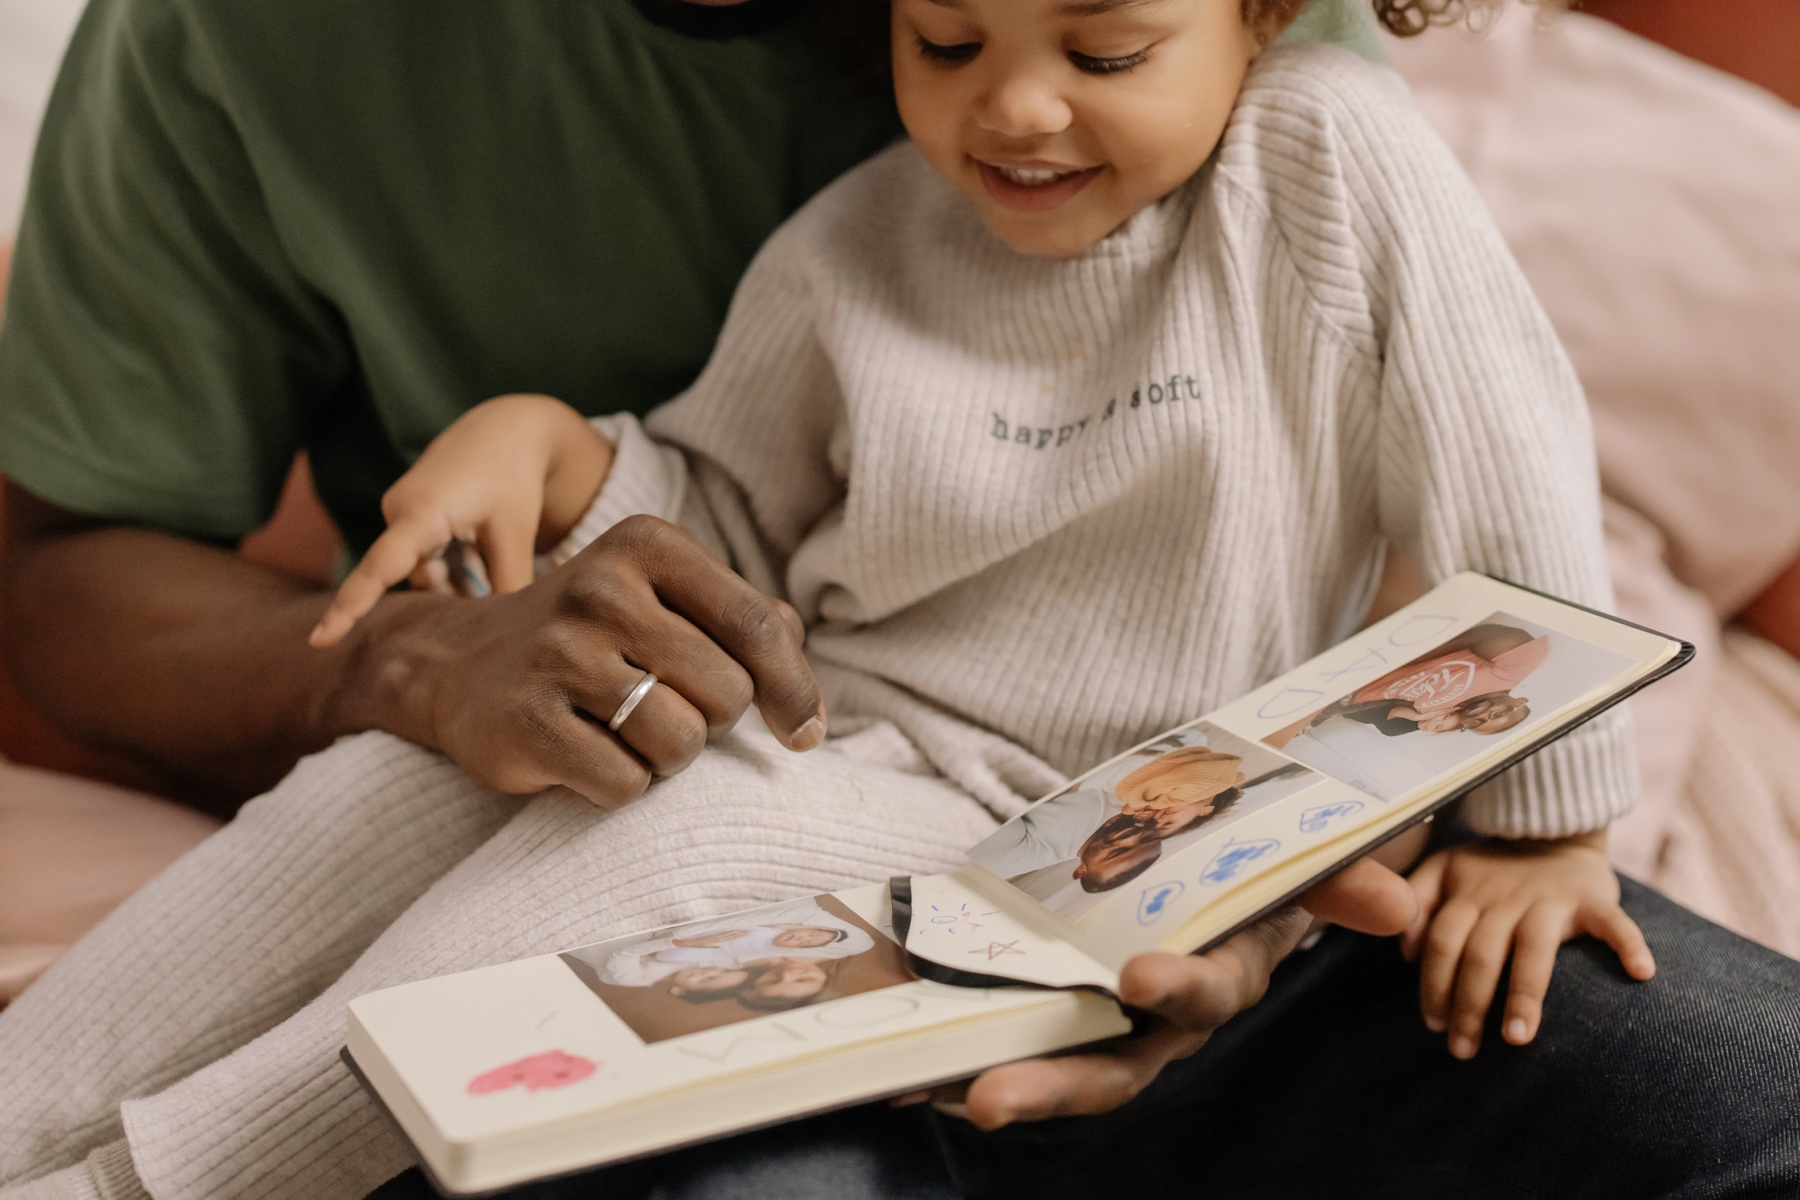 A father and young daughter look through a photo album together.